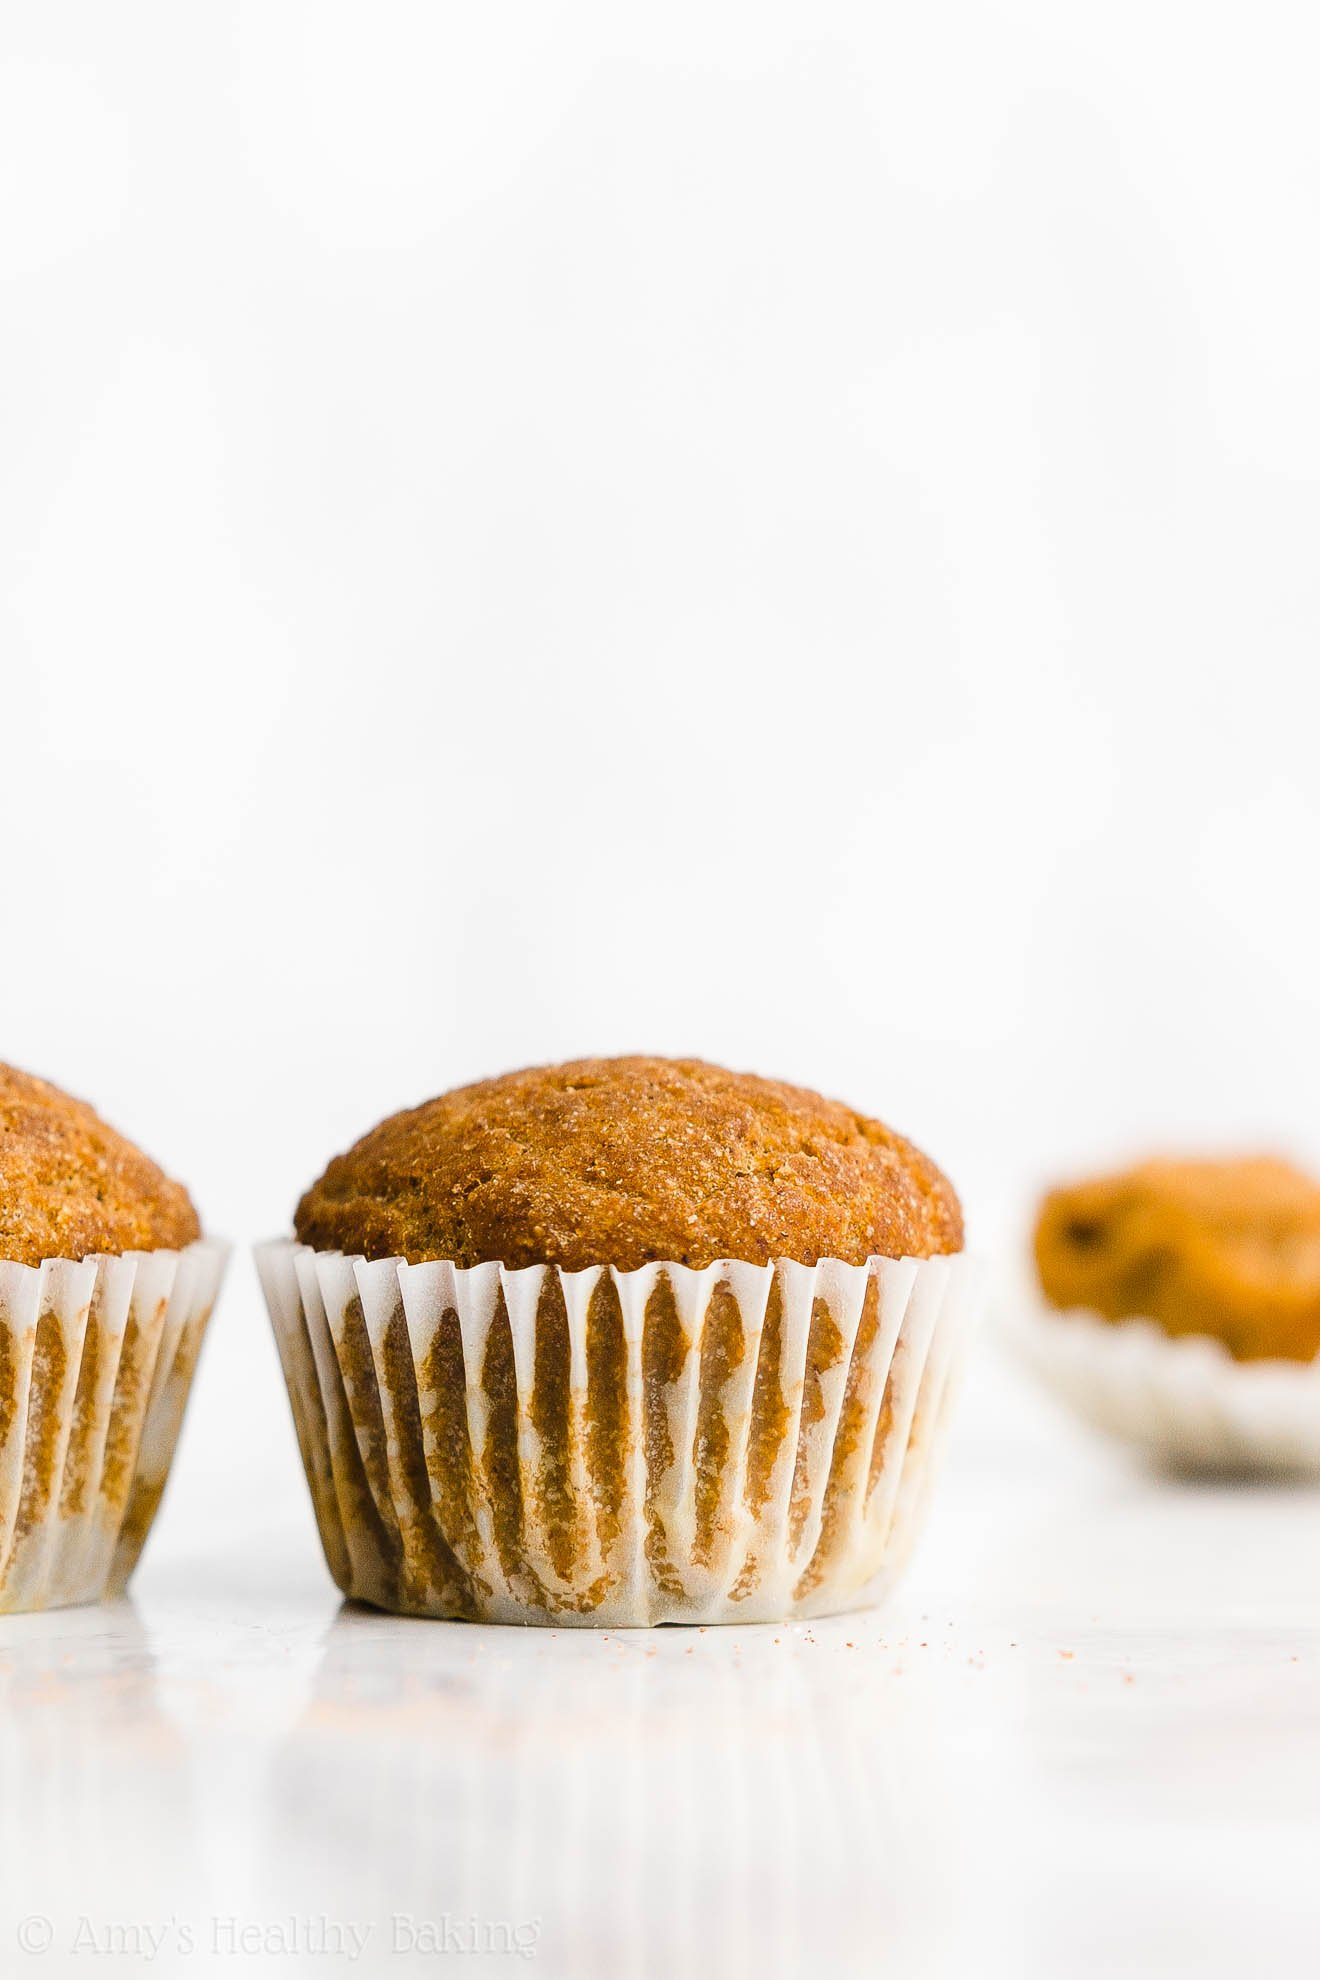 Best Easy Healthy Low Fat Clean Eating Sugar Free Vegan Pumpkin Muffins